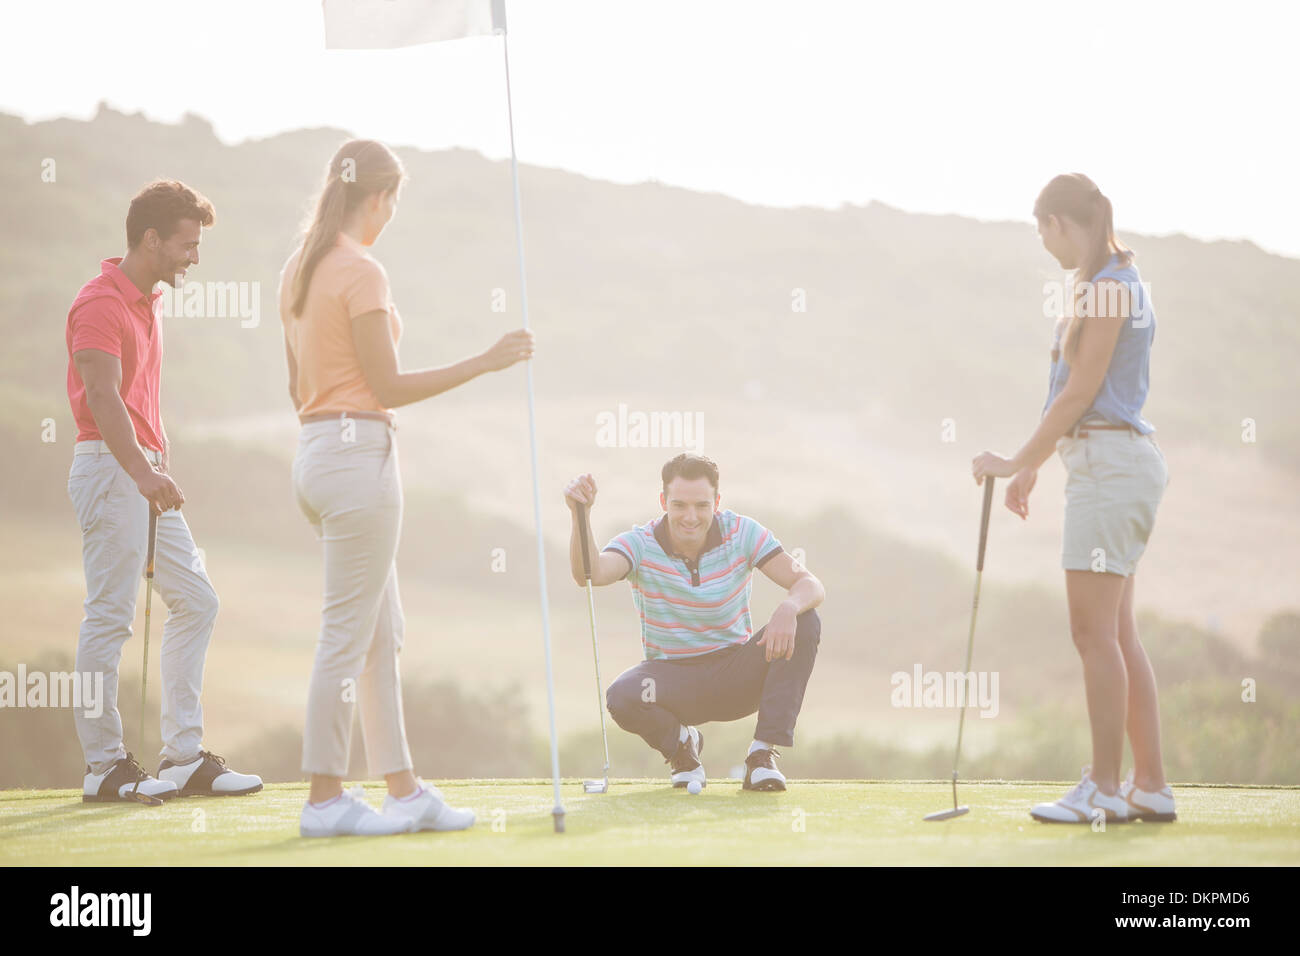 Friends watching man prepare to putt on golf course - Stock Image